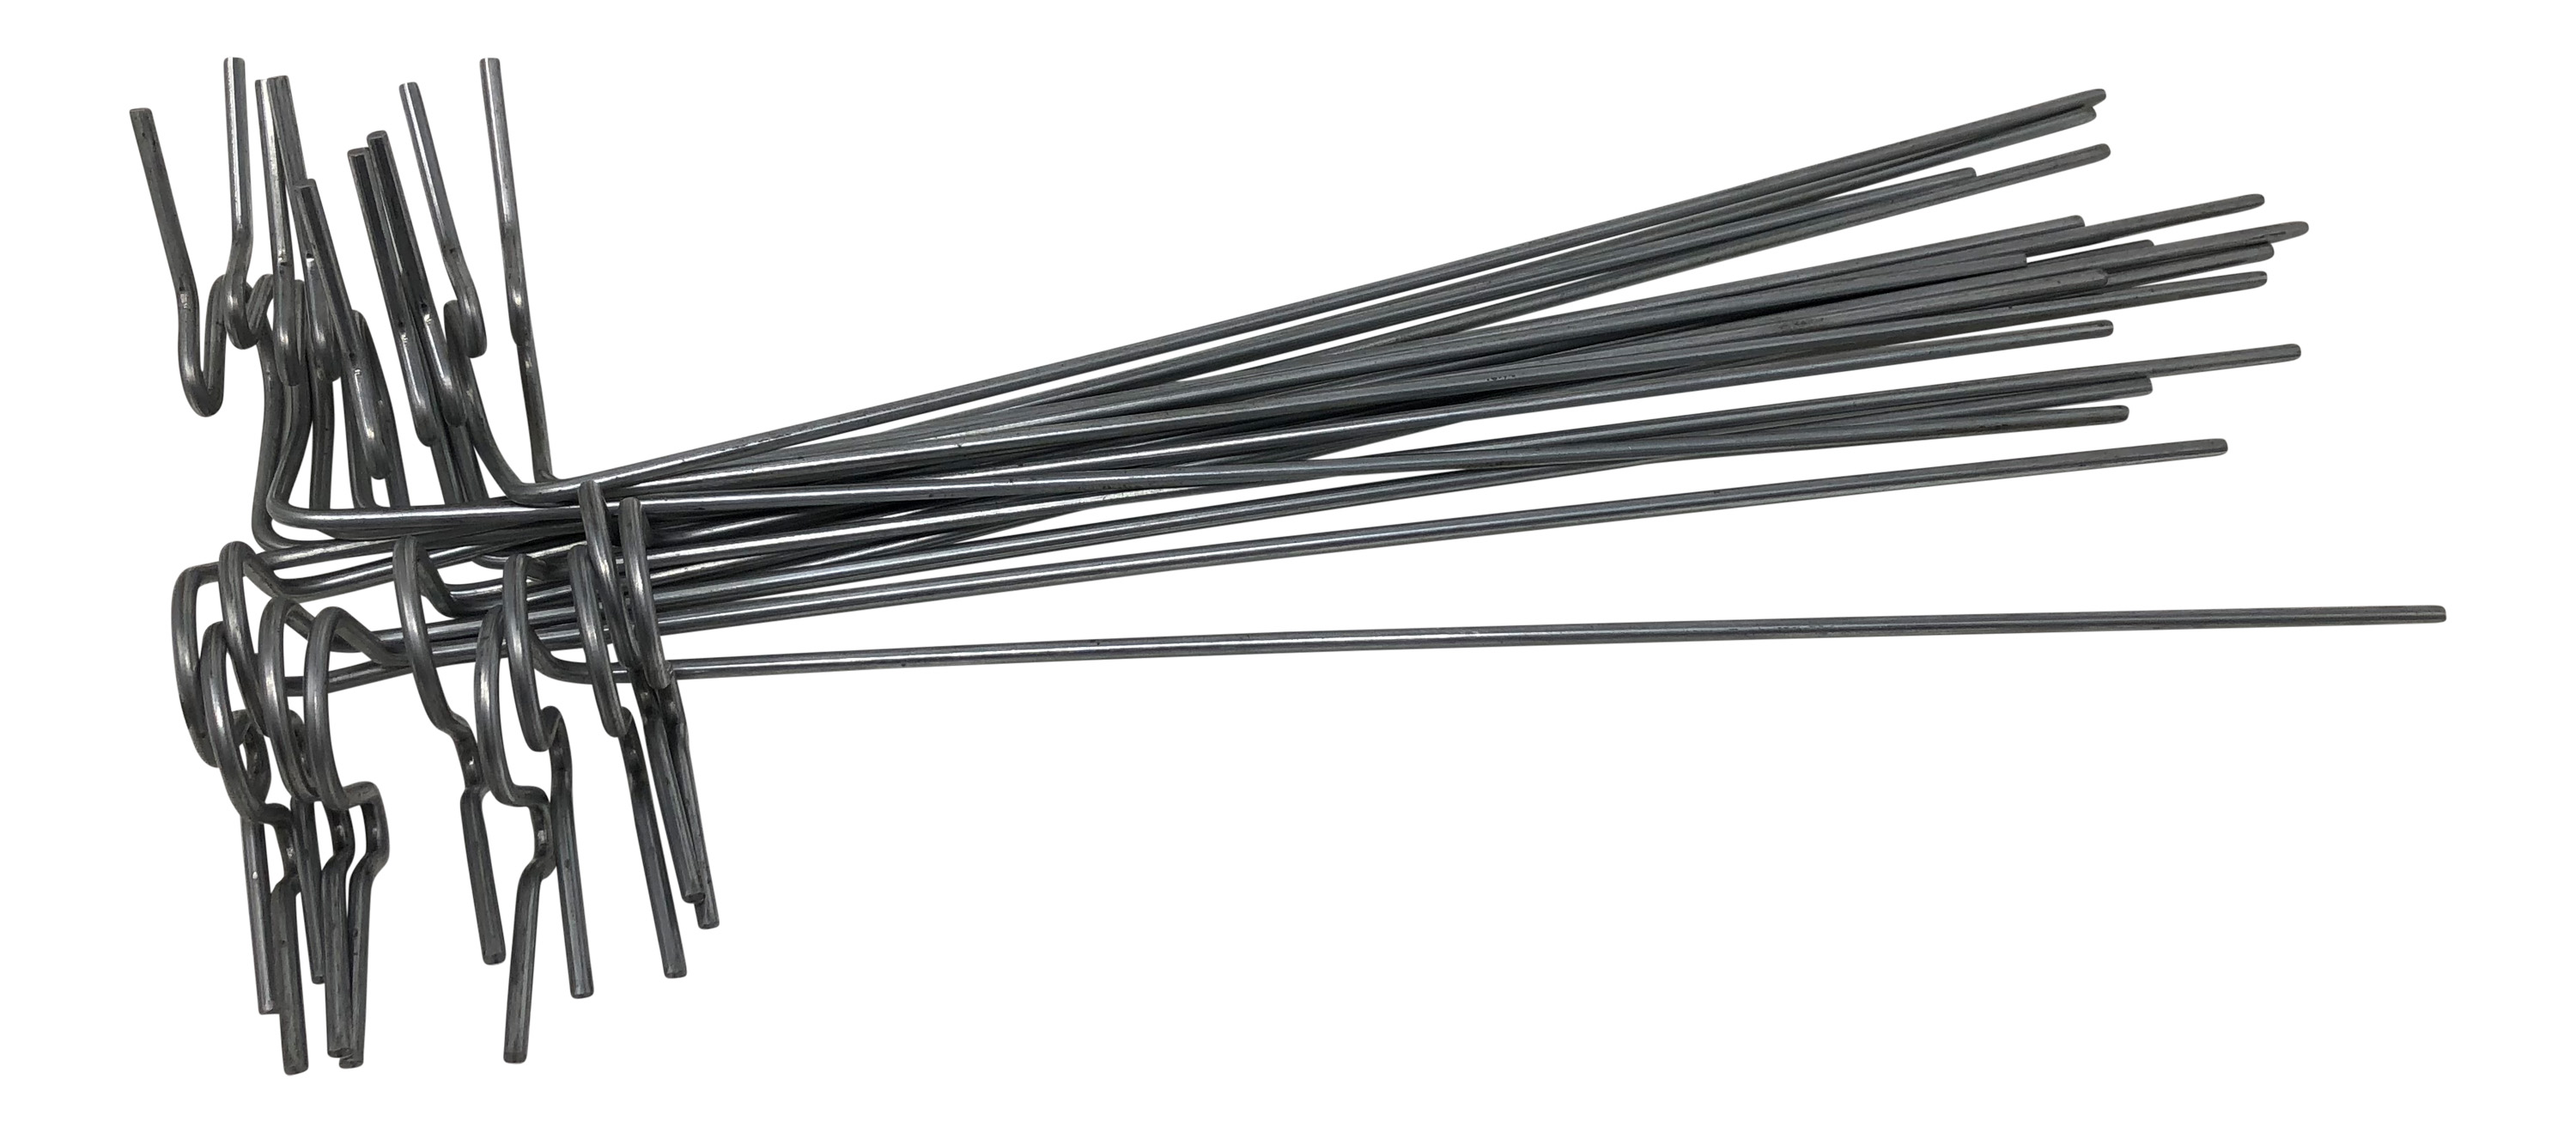 Lawn Stakes For Christmas Lights Galvanized Steel Wire 10 In Long 20 Per Pack